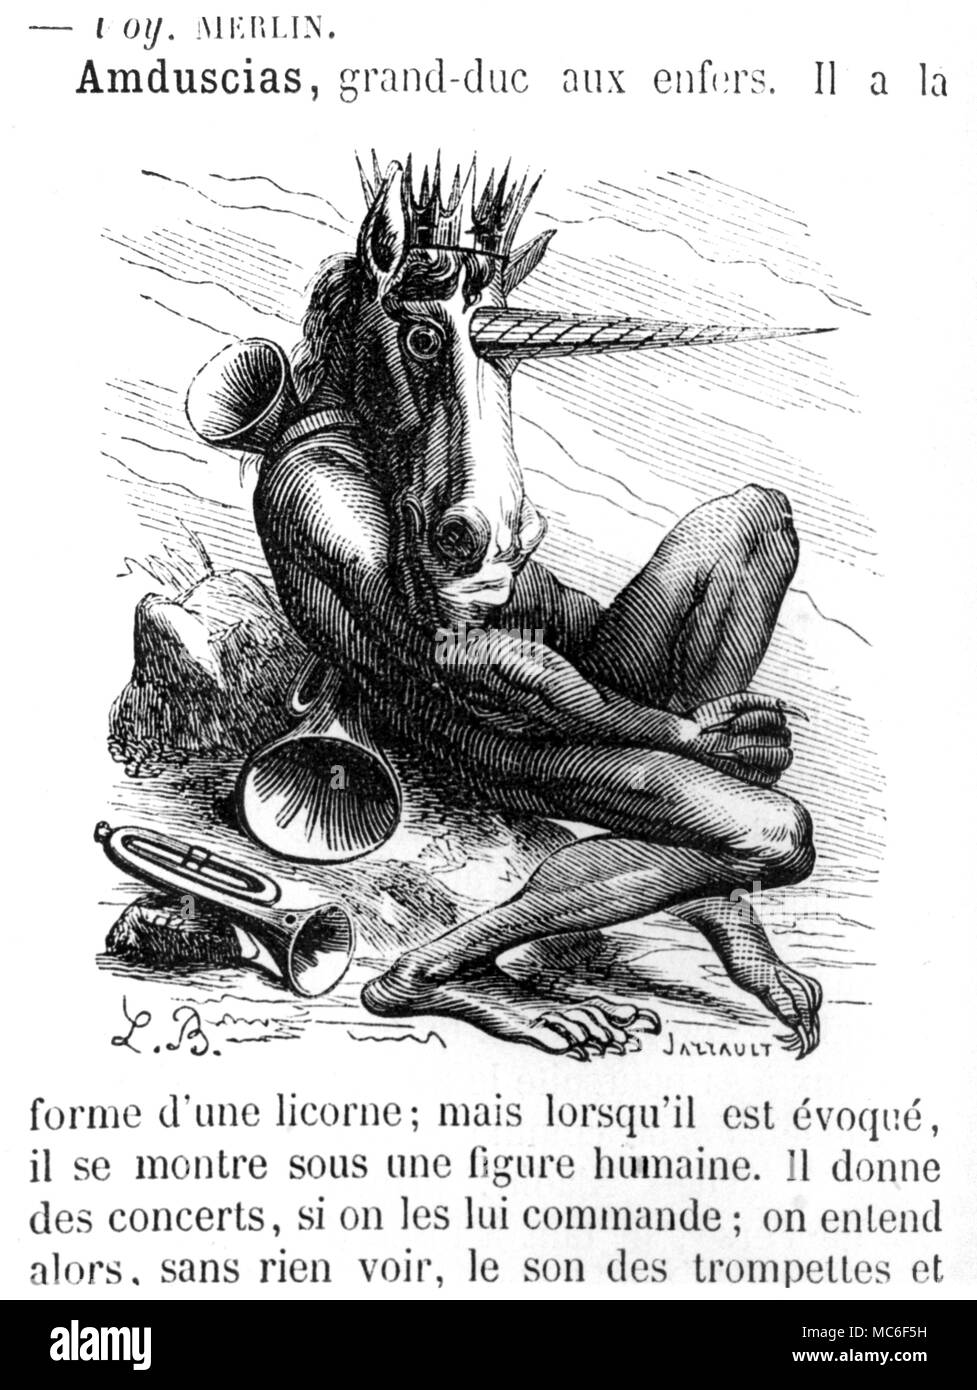 The unicorn-demon, Amduscias, a grand-duke of the infernal legions, who is conjured mainly for his power to command sweet music (hence, the trumpets).  Woodengraving from Collin de Plancy's Dictionnaire Infernal, 1863 - Stock Image